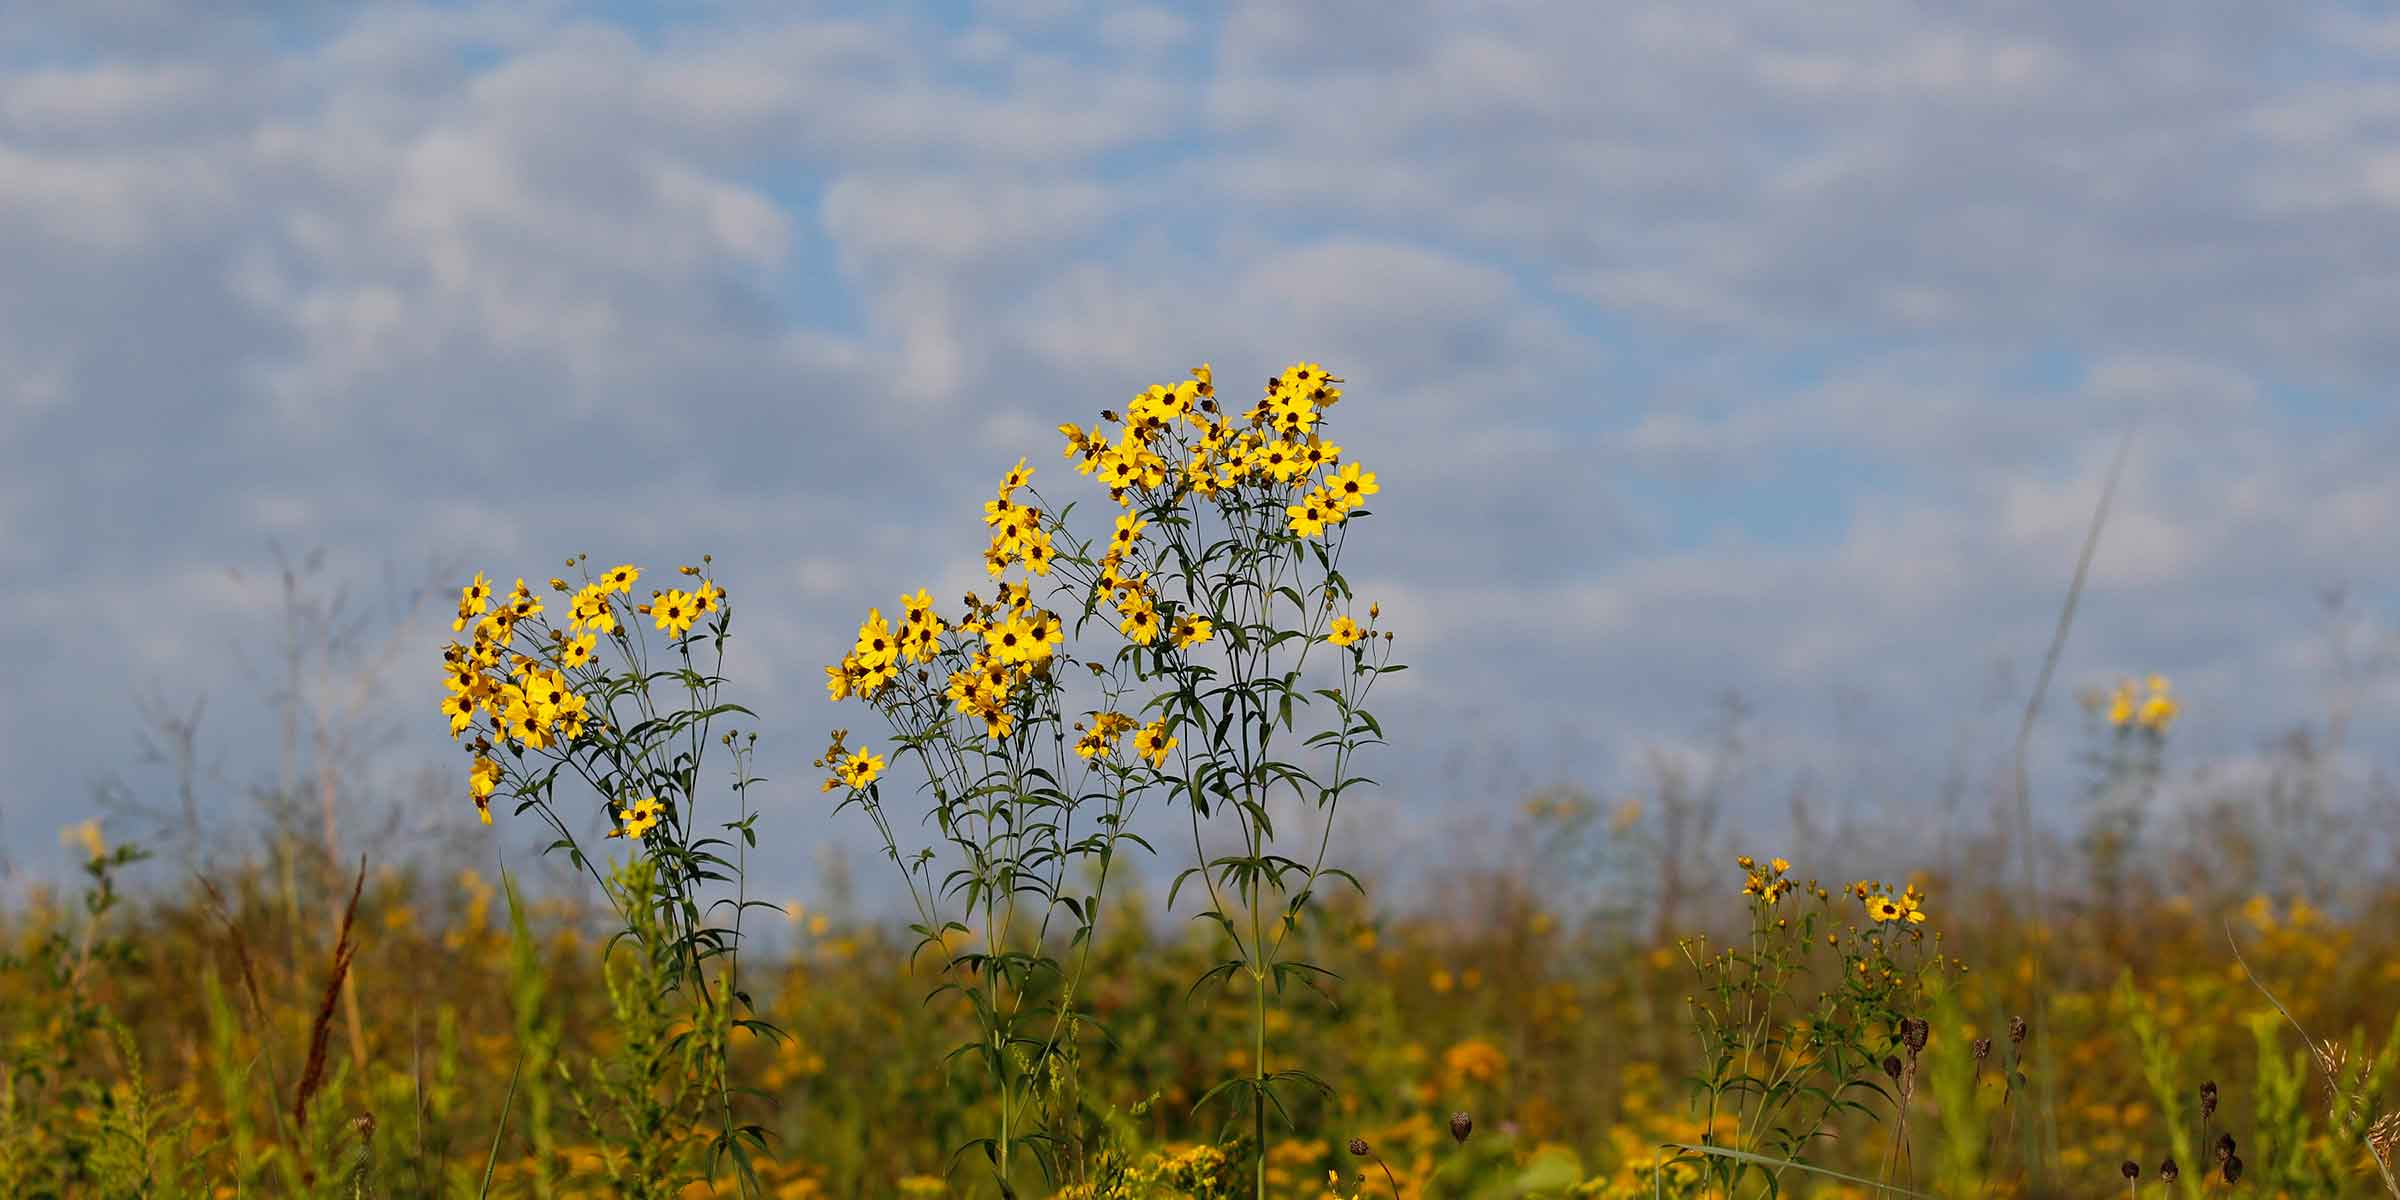 Clusters of daisy-like yellow flowers boom in a grassland.